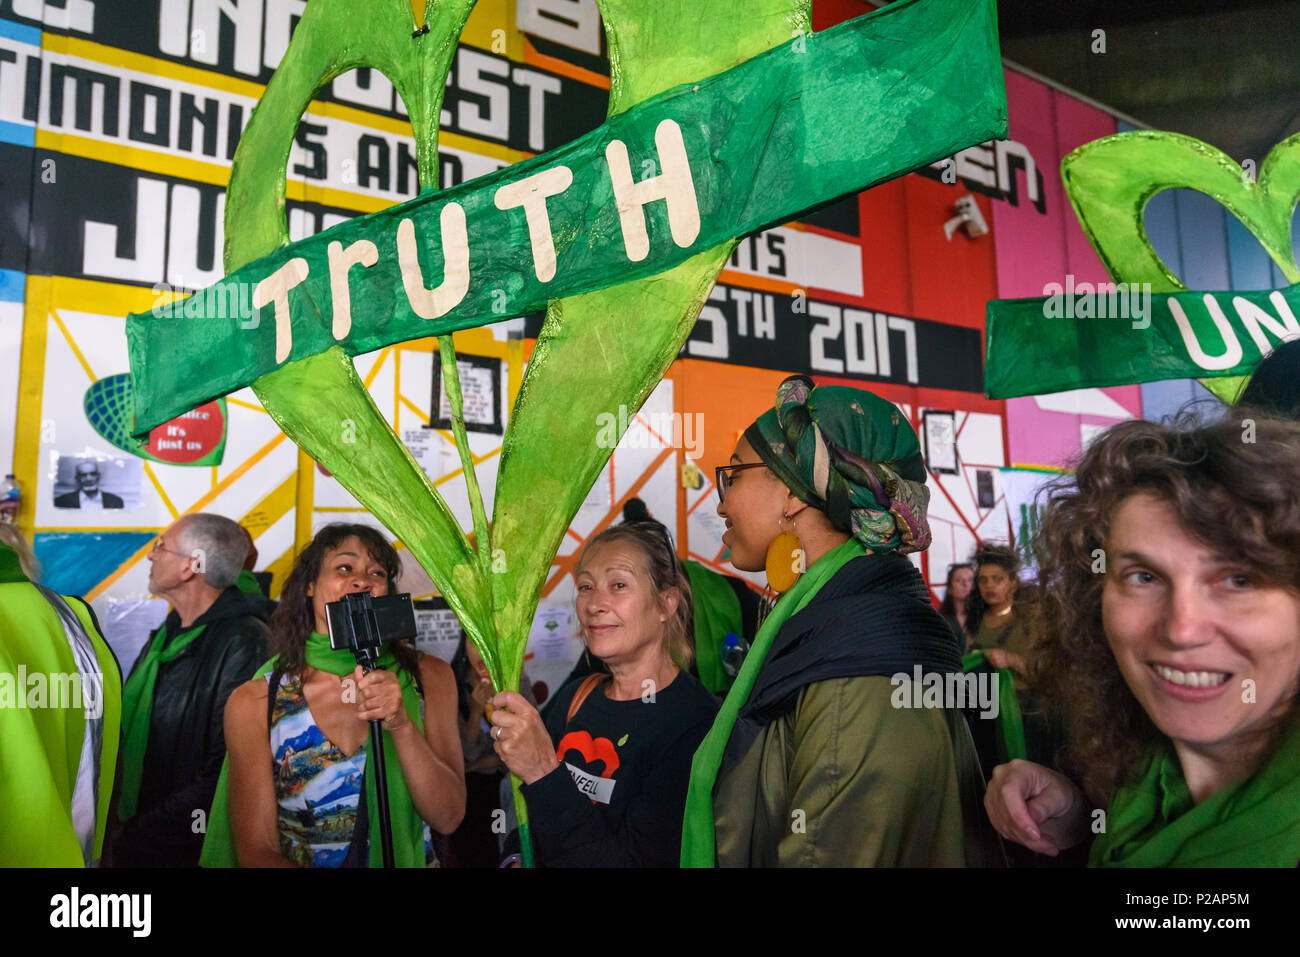 London, UK. 14th June 2018. People hold large Grenfell hearts under the Westway as they wait to walk with thousands in silence from close to Grenfell Tower remembering the victims of the disaster on the first anniversary of the disastrous fire which killed 72 and left survivors traumatised. Many of those made homeless by the fire are still in temporary accomodation a year later despite promises mde by Theresa May and Kensington & Chelsea council, who many fell have failed the local community both before and after the fire. They say had they been listened to and respected Grenfell would not hav - Stock Image